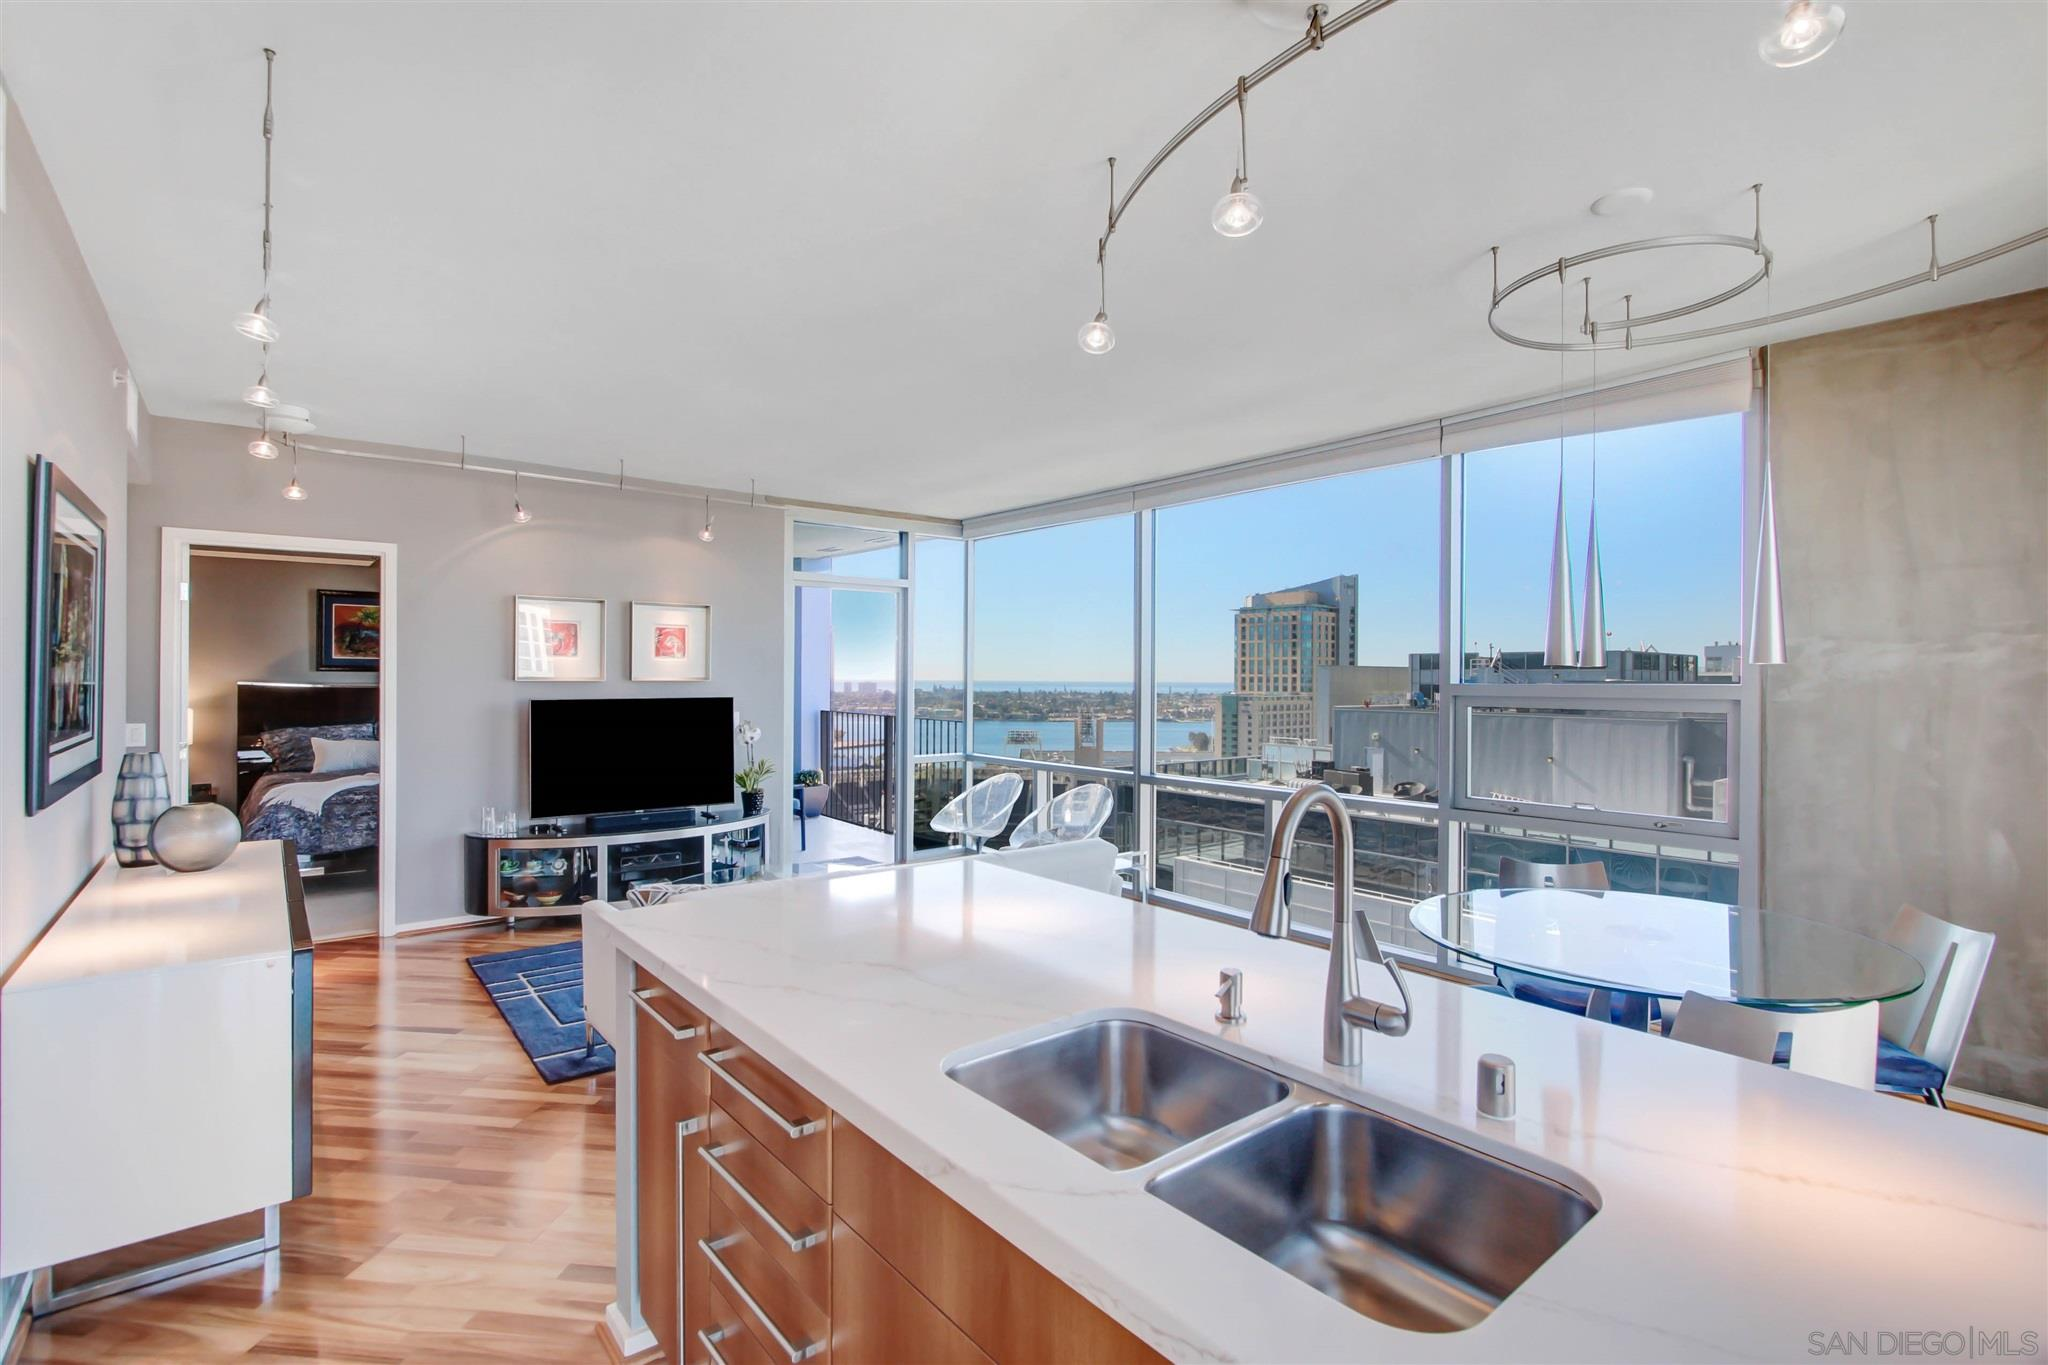 EXQUISITE IN EVERY DETAIL- 23RD FLR-PERCHED NEAR TOP OF THE HIGHRISE! WEST FACING WITH NORTH-SOUTH-VIEWS AS FAR AS THE EYES CAN SEE-OCEAN,BAY,CORONADO ISLAND,PETCO PARK HOME PLATE-CITYSCAPE -FLOOR-CEILING WINDOWS-REMODELED KITCHEN OPEN FLR PLAN-STAINLESS STEEL APPS--HARDWOOD FLR-SPACIOUS BALCONY SPLIT BEDROM PLAN-LARGE WALKIN CLOSET-DUAL VANITY MB-LARGE WASHEER/DRYER - ICONIC AMENTIES 26TH FLR ROOFTOP SKYBOX-1,700SQFT FITNESS,MULTIMEDIA THEATER ROOM-CLUBHOUSE-FIREPIT -STORAGEROOM+LOCKER+MOTORCYCLE SPACE!!VERY LARGE STORAGE ROOM+STORAGE LOCKER AND A MOTORCYLCE ASSIGNED SPACE ALL CAN CONVEY WITH SALE. ALL LOCATED ON THE FIRST LEVEL PARKING OF THE GARAGE! VERY RARE TO HAVE SUCH ASSETS ALL ASSIGNED WITH A CONDO AT ICON. MAKES THIS CONDO RARE.  FIRST TIME ON THE MARKET. ORIGINAL OWNERS. LOCATED IN ONE OF THE MOST HIGHLY DESIRABLE COMPLEX IN DOWNTOWN SAN DIEGO. ICON HAS ONE OF THE MOST ATTRACTIVE AMENTIES- LOCATION-ENJOY PETCO PARK VENUES FROM ICON'S 26TH FLOOR ROOFTOP OR FROM YOUR OWN RESIDENCE #2302 - HOA MANAGEMENT WAS HONORED WITH PRESTIGIOUS AWARD FOR MANAGEMENT EXCELLENCE. MOST OF THE AMENTIES RECENTLY REMODELED.